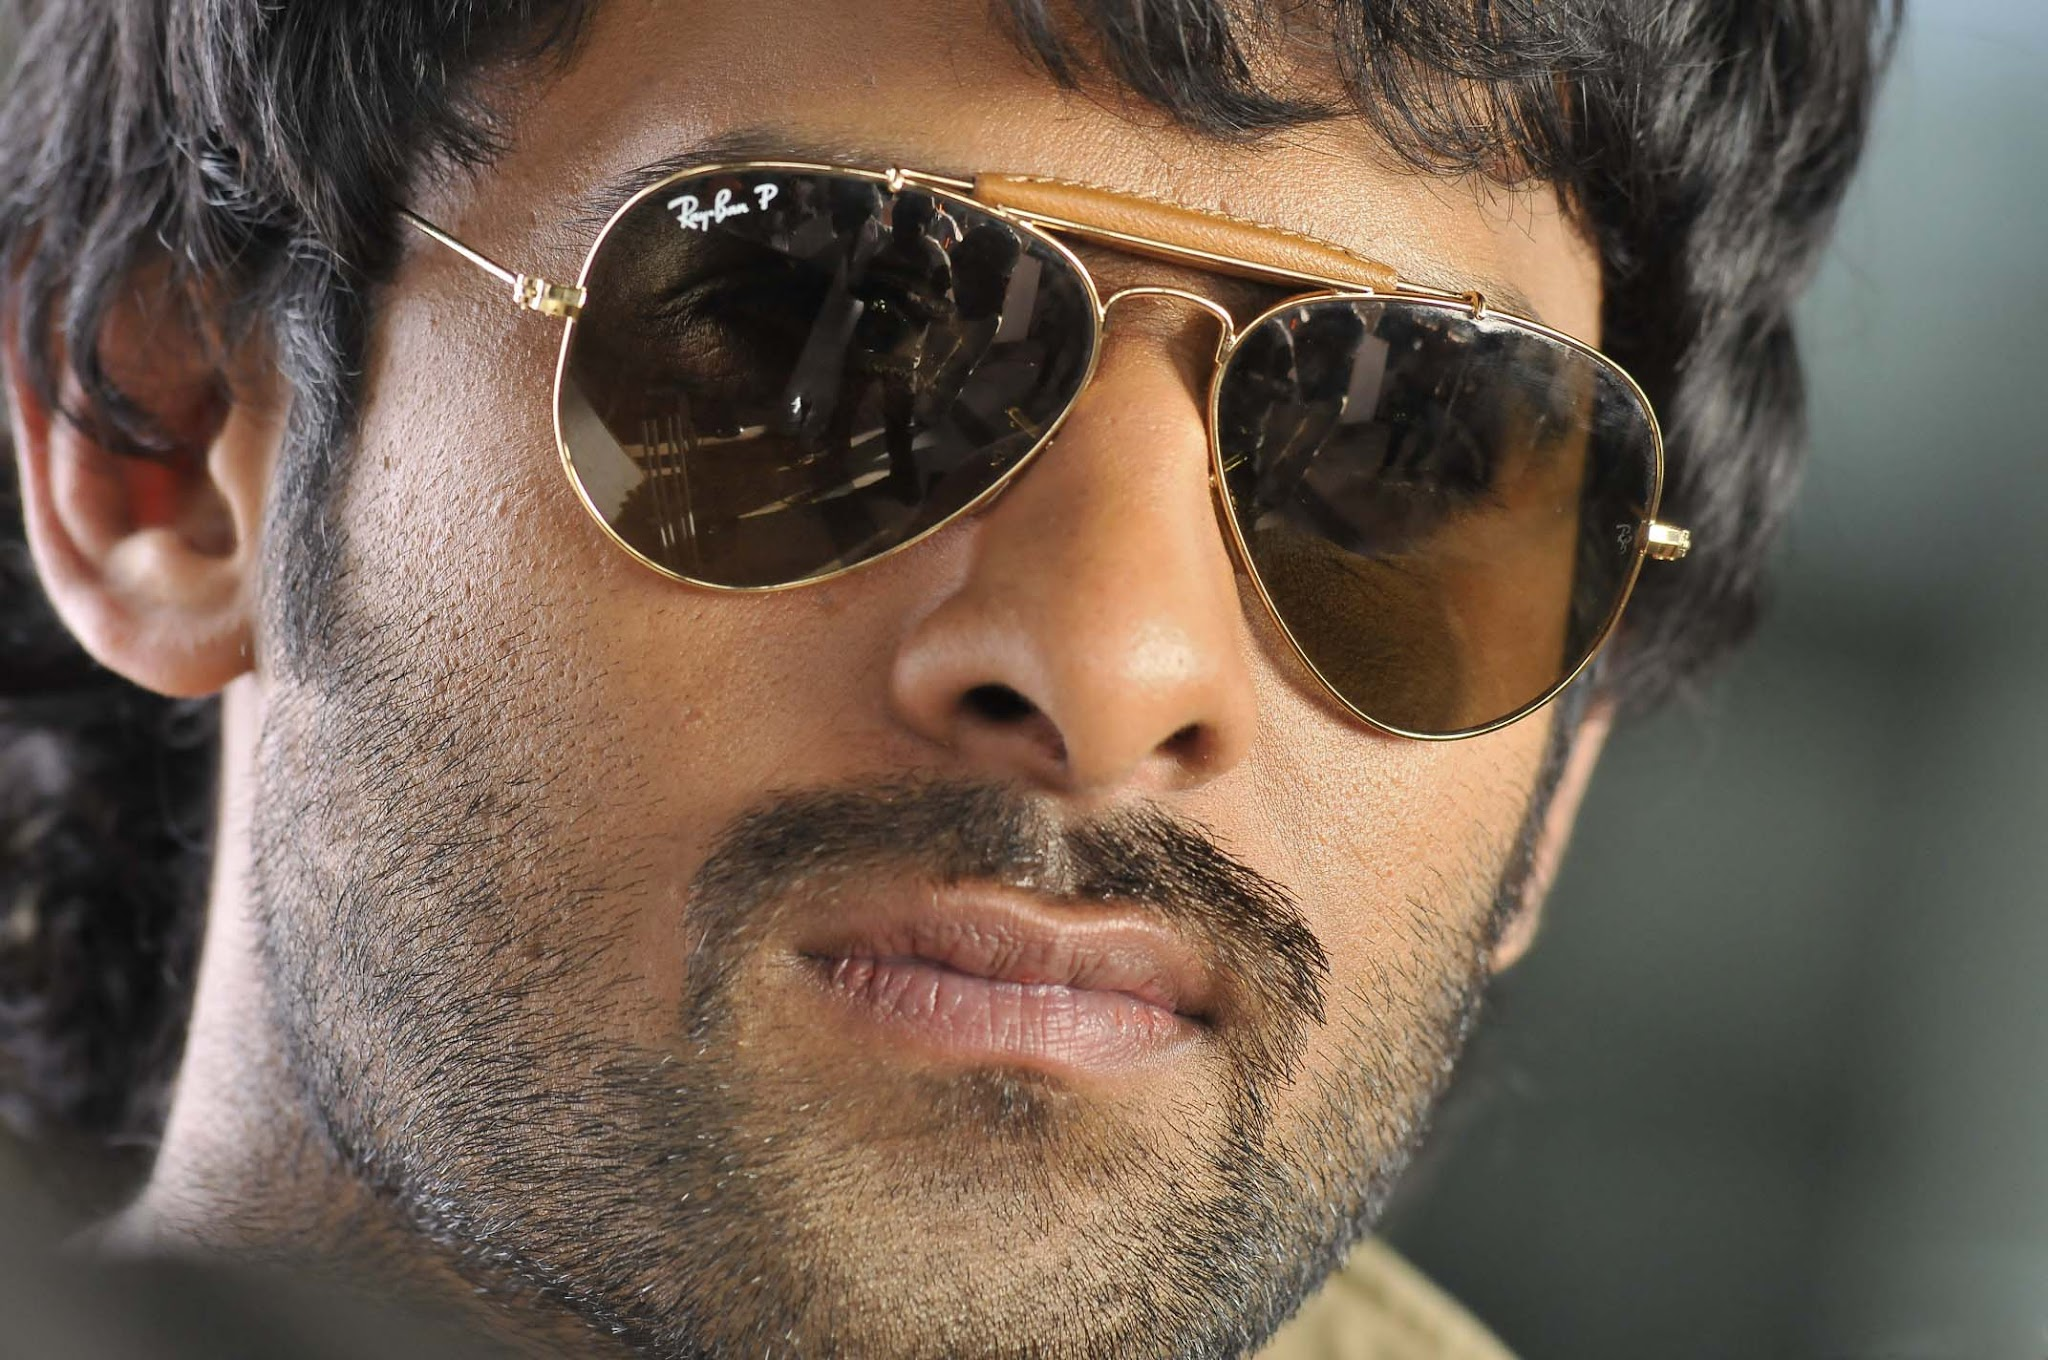 Prabhas Rebel New Stills Wallpapers Ultra Hd 2000: Prabhas Rebel New Stills/Wallpapers : Ultra HD (2000